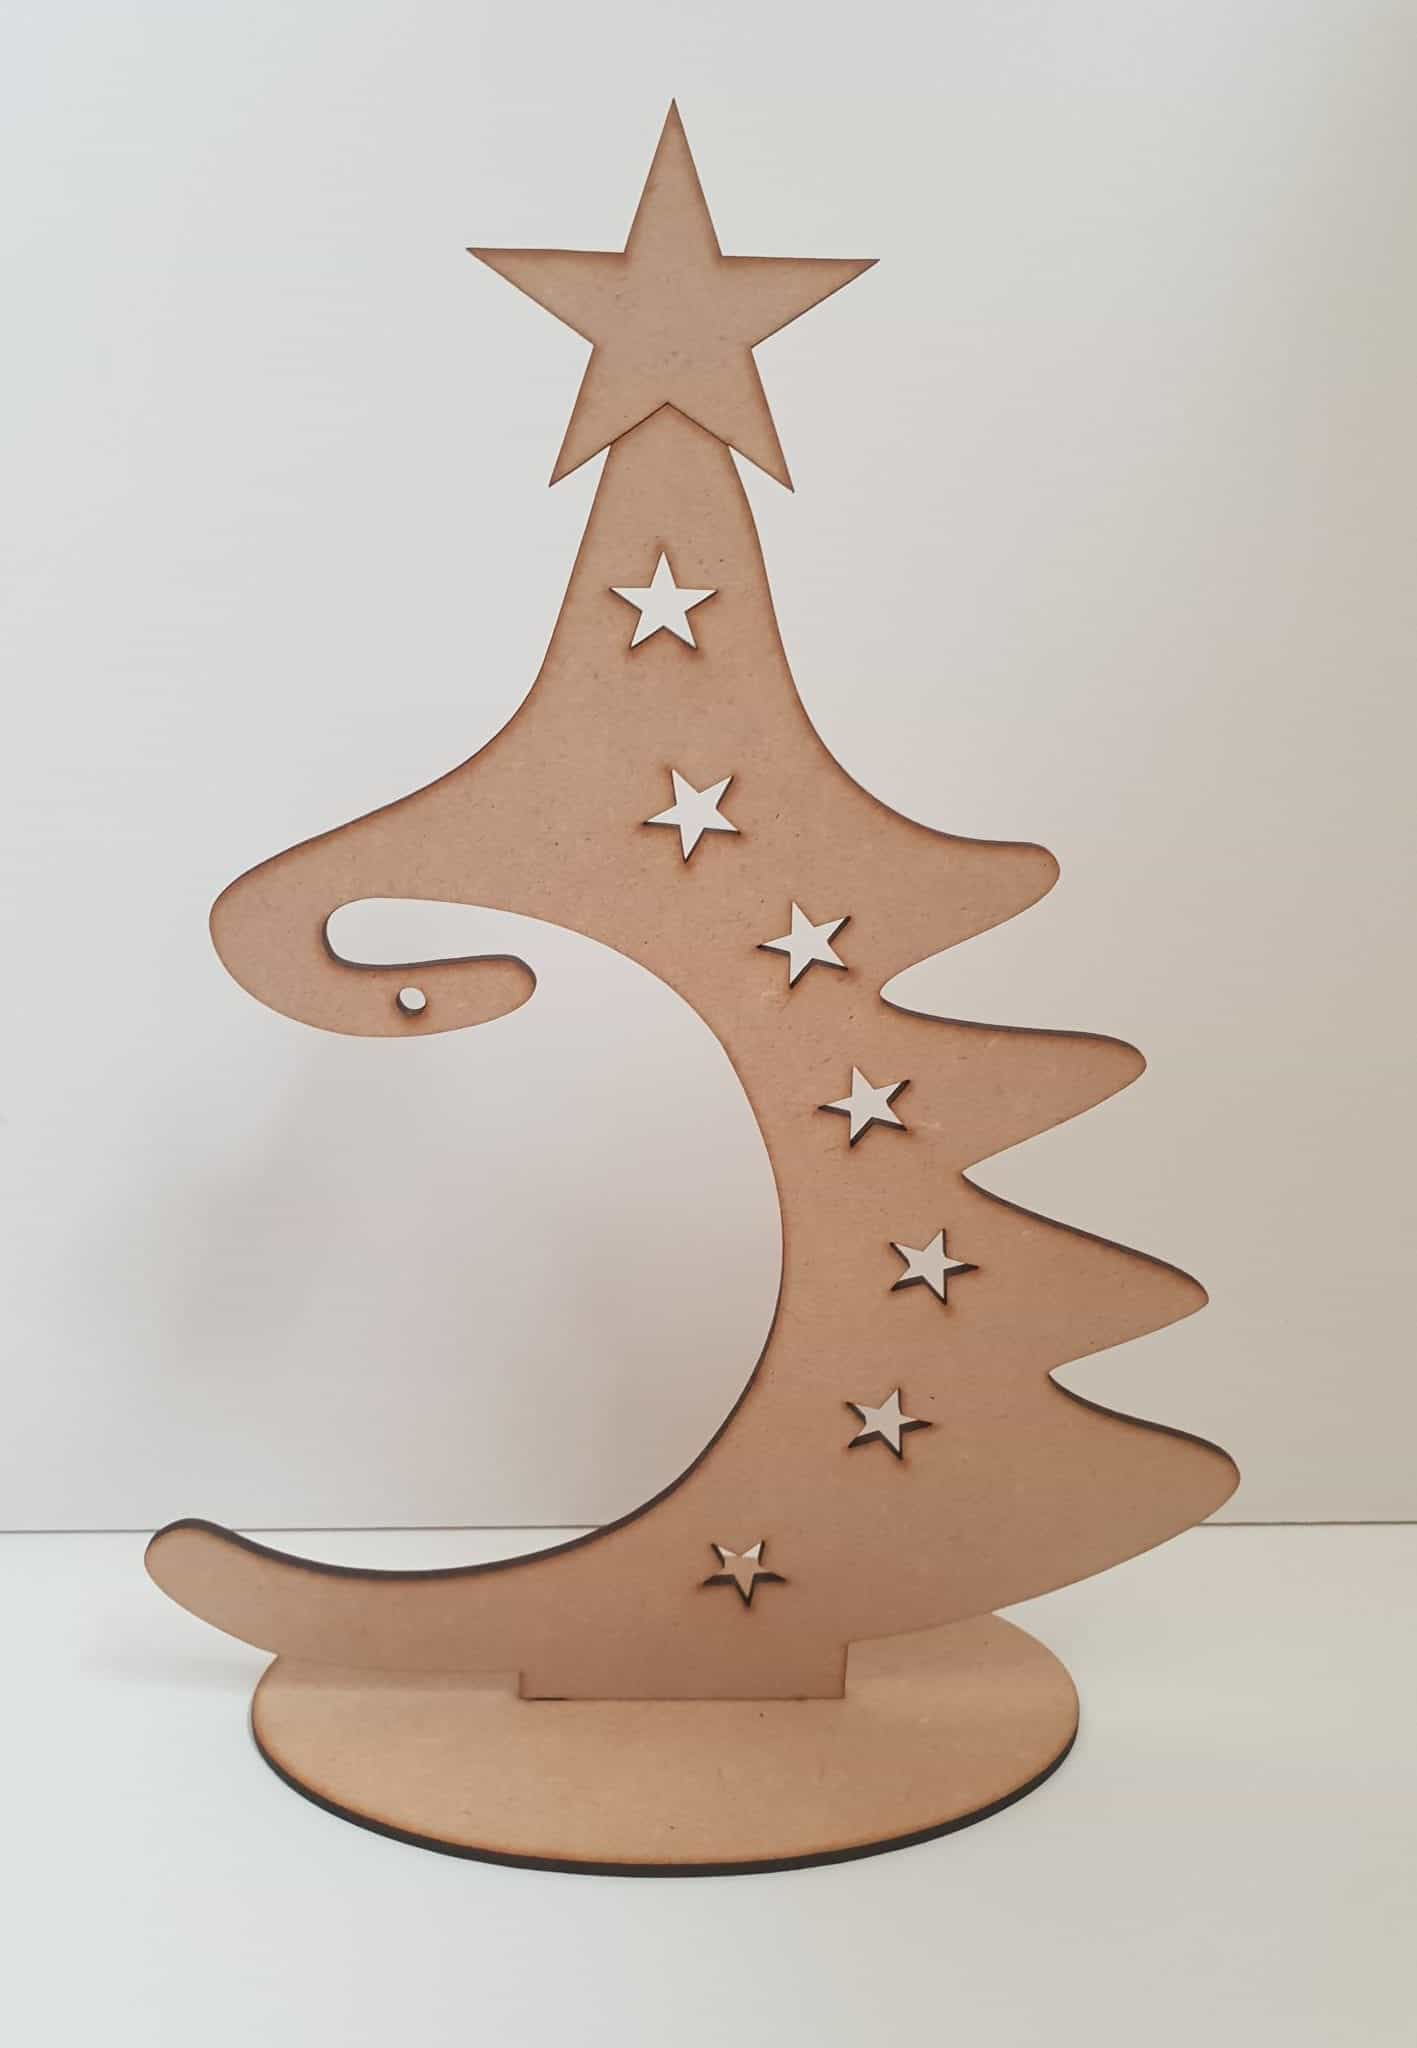 Details About Baubles Wooden Christmas Bauble Tree Hanger Free Standing Plaque Xmas Mdf S412